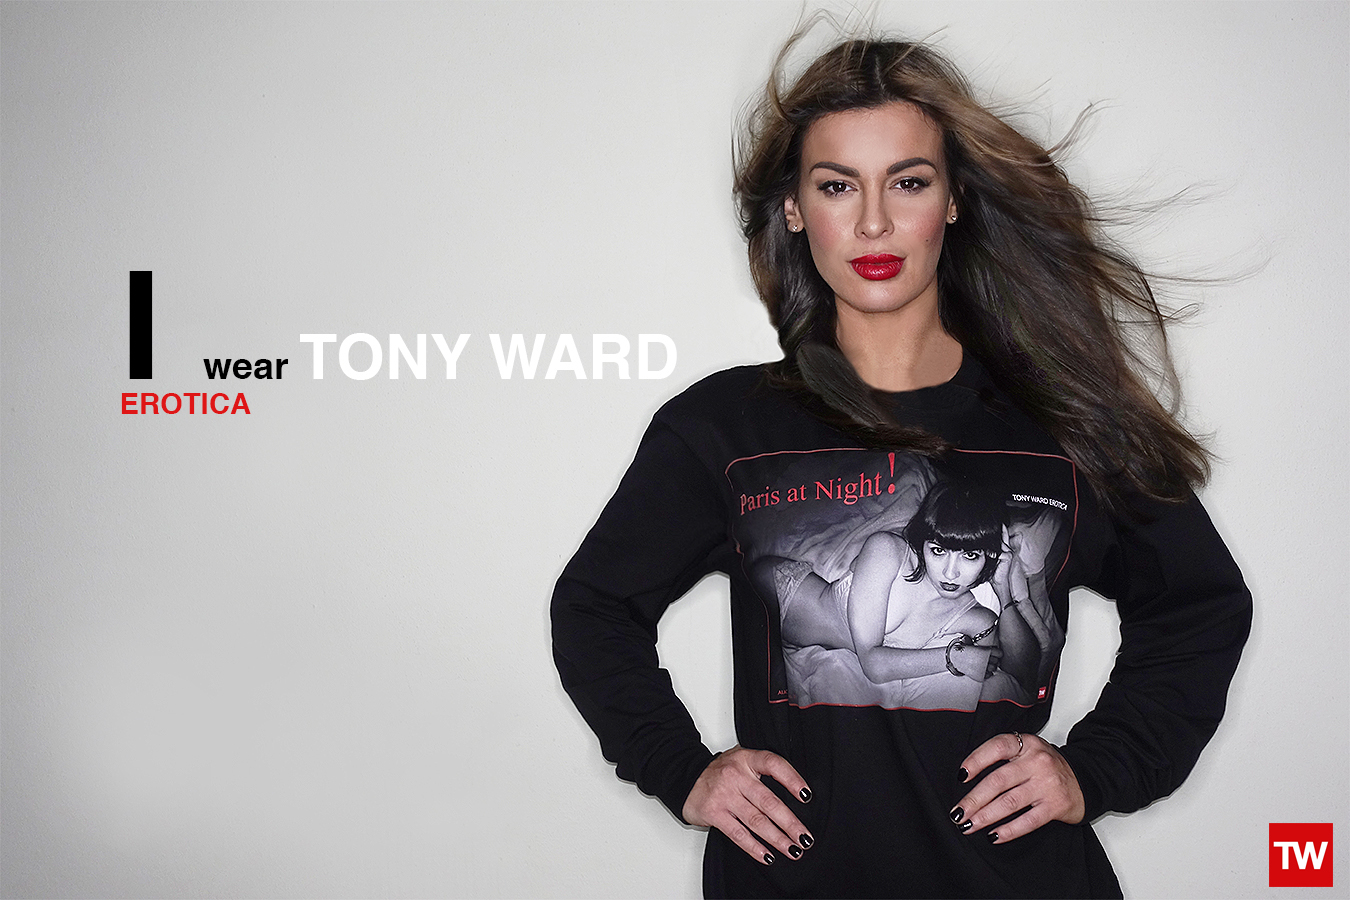 Tony_Ward_Studio_longsleeve_Paris_at_Night_store_t-shirts_I_wear_erotica